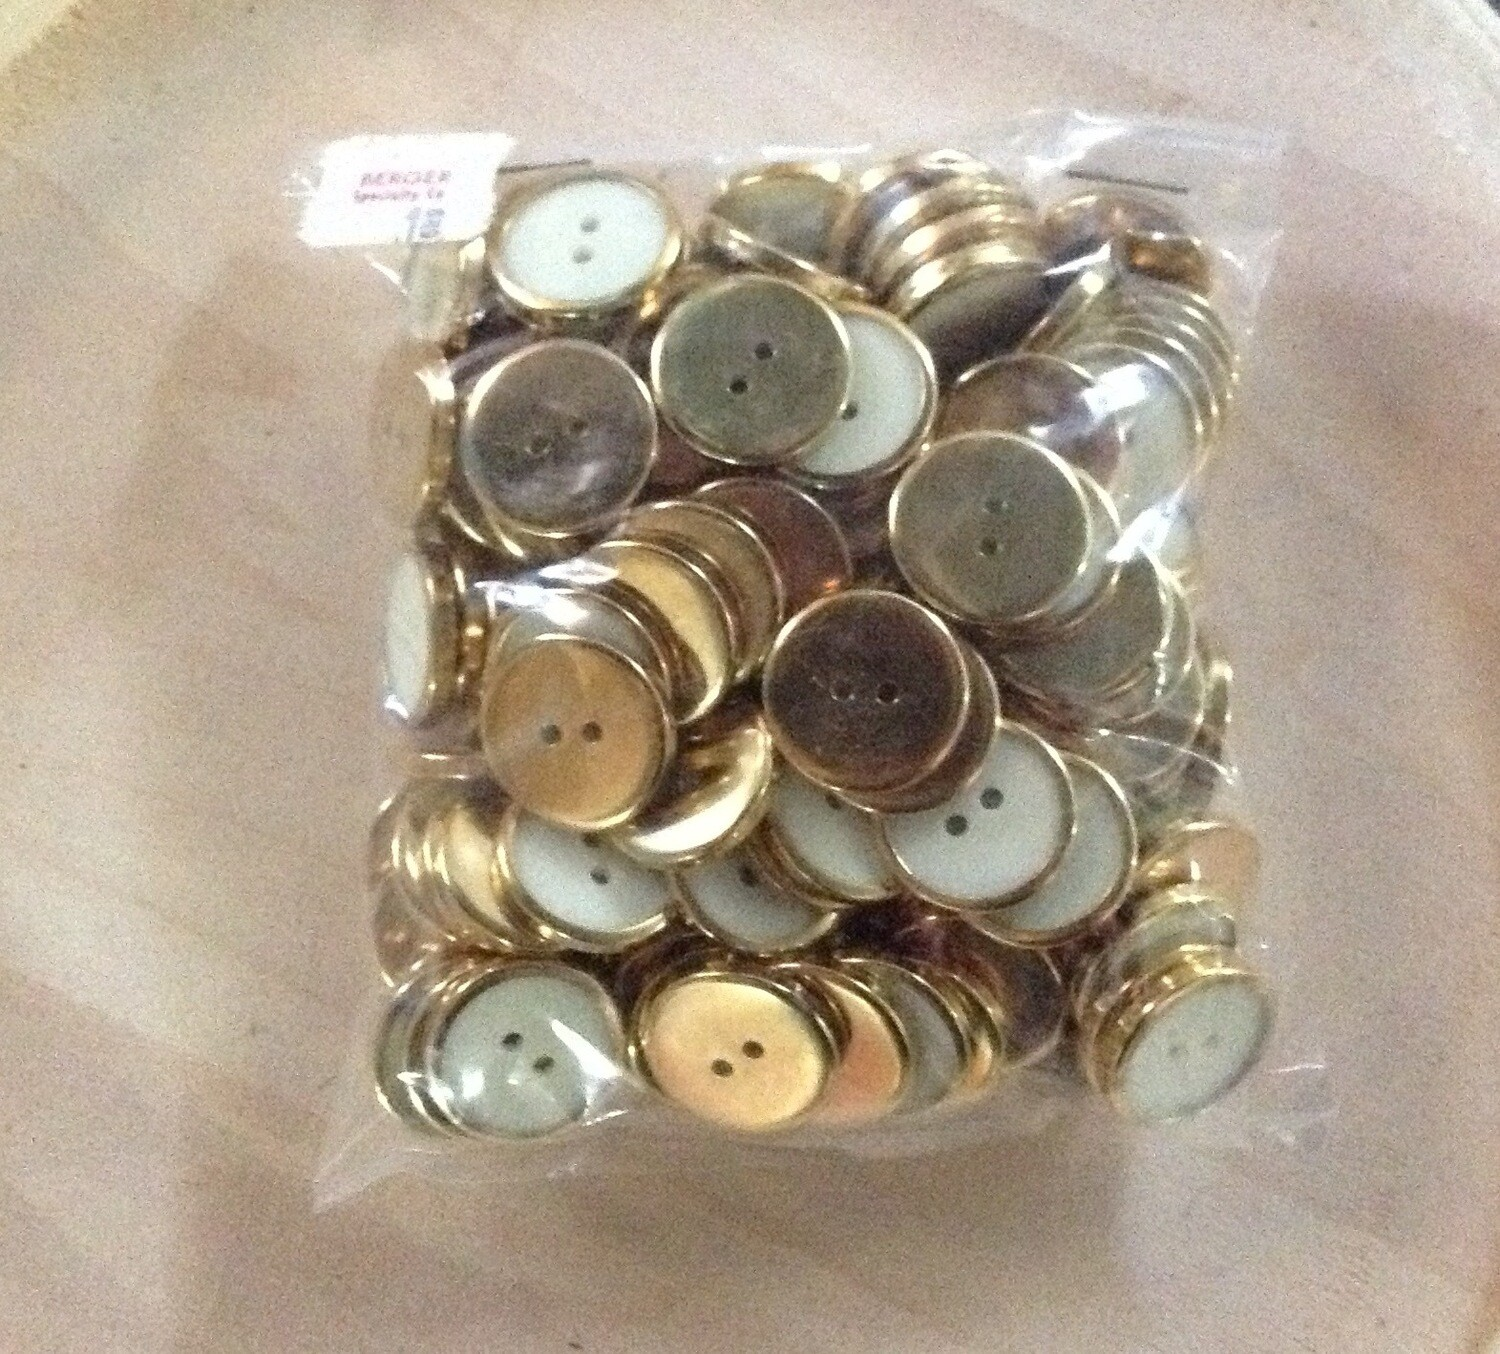 Buttons: White Plastic w/ Gold Metal Finish